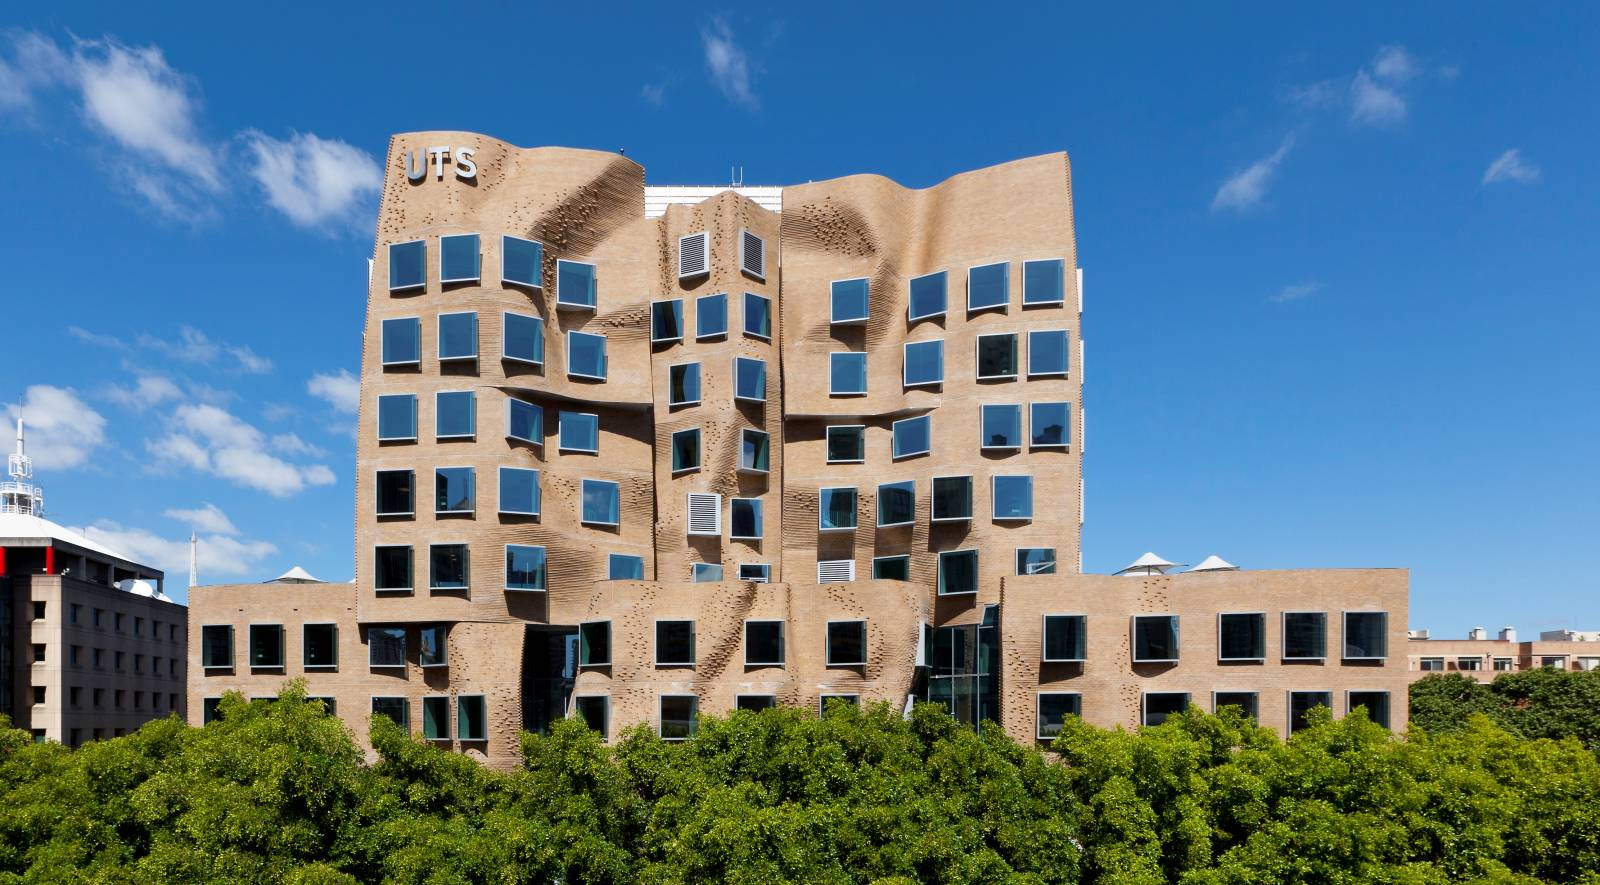 Australia's New Architectural Icon by Frank Gehry2